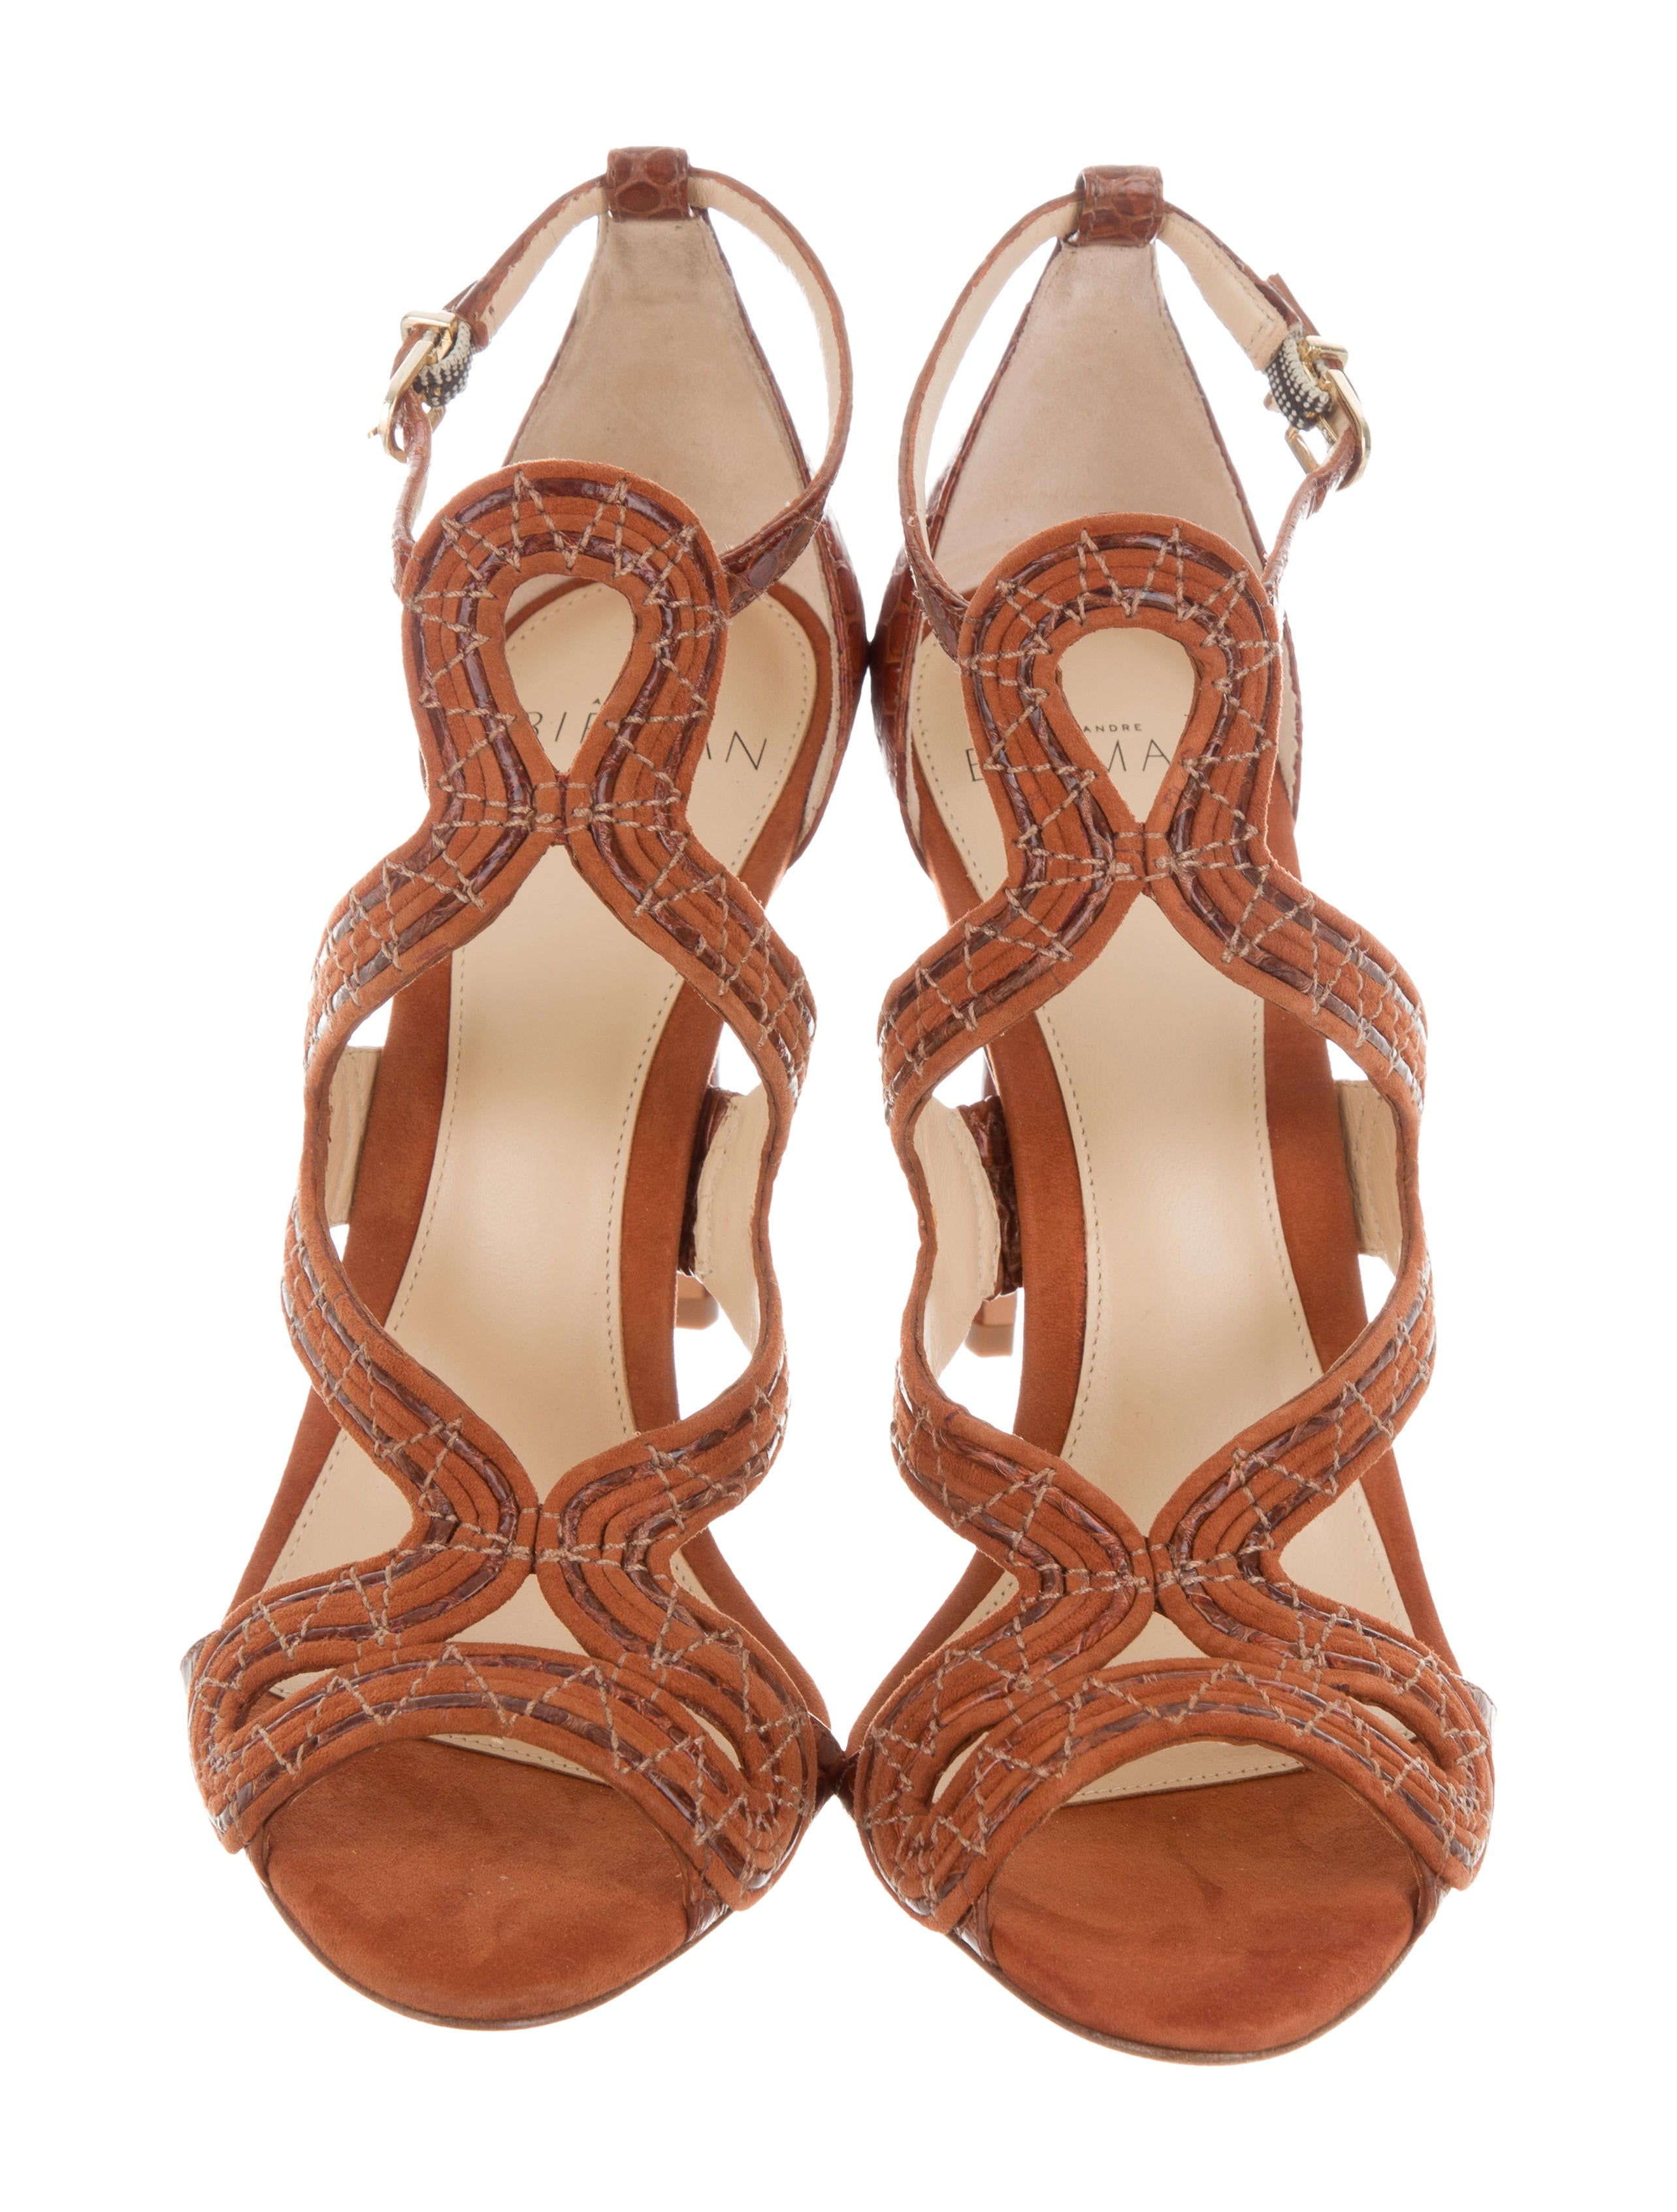 Alexandre Birman New Alice Snakeskin Sandals w/ Tags cheap sneakernews browse cheap sale low shipping fee dU8QDPk7